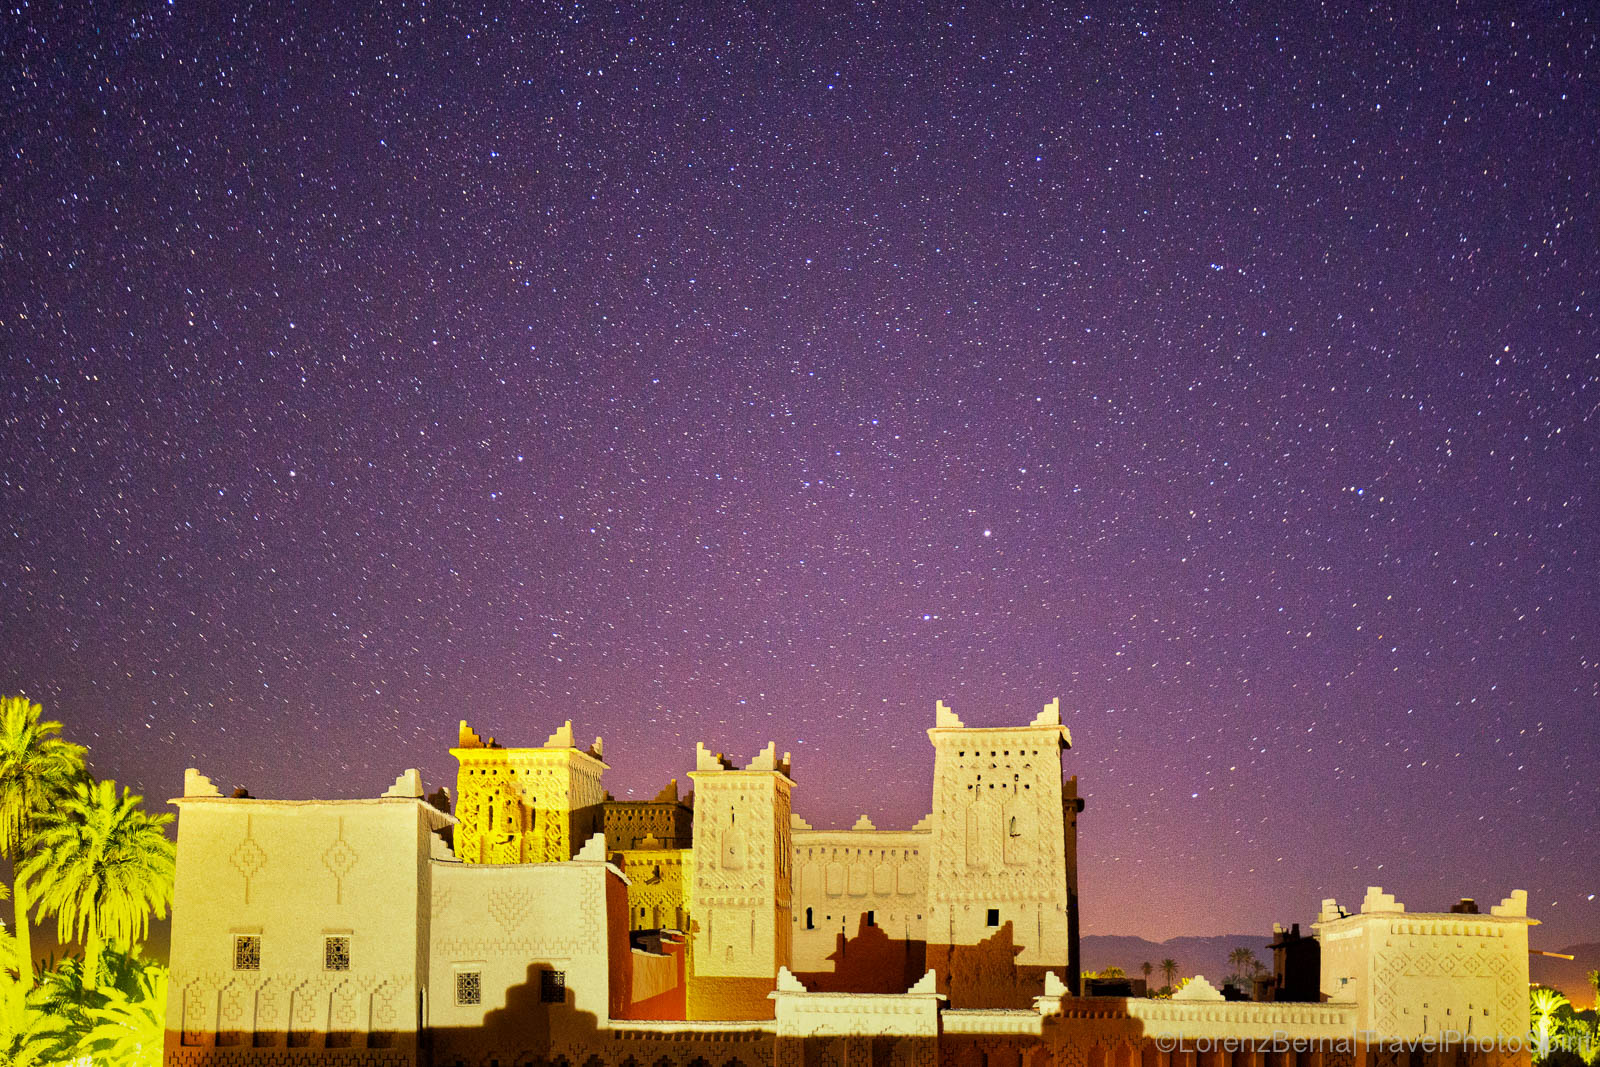 The Amerhidl Kasbah in Skoura, Morocco, under the stars.